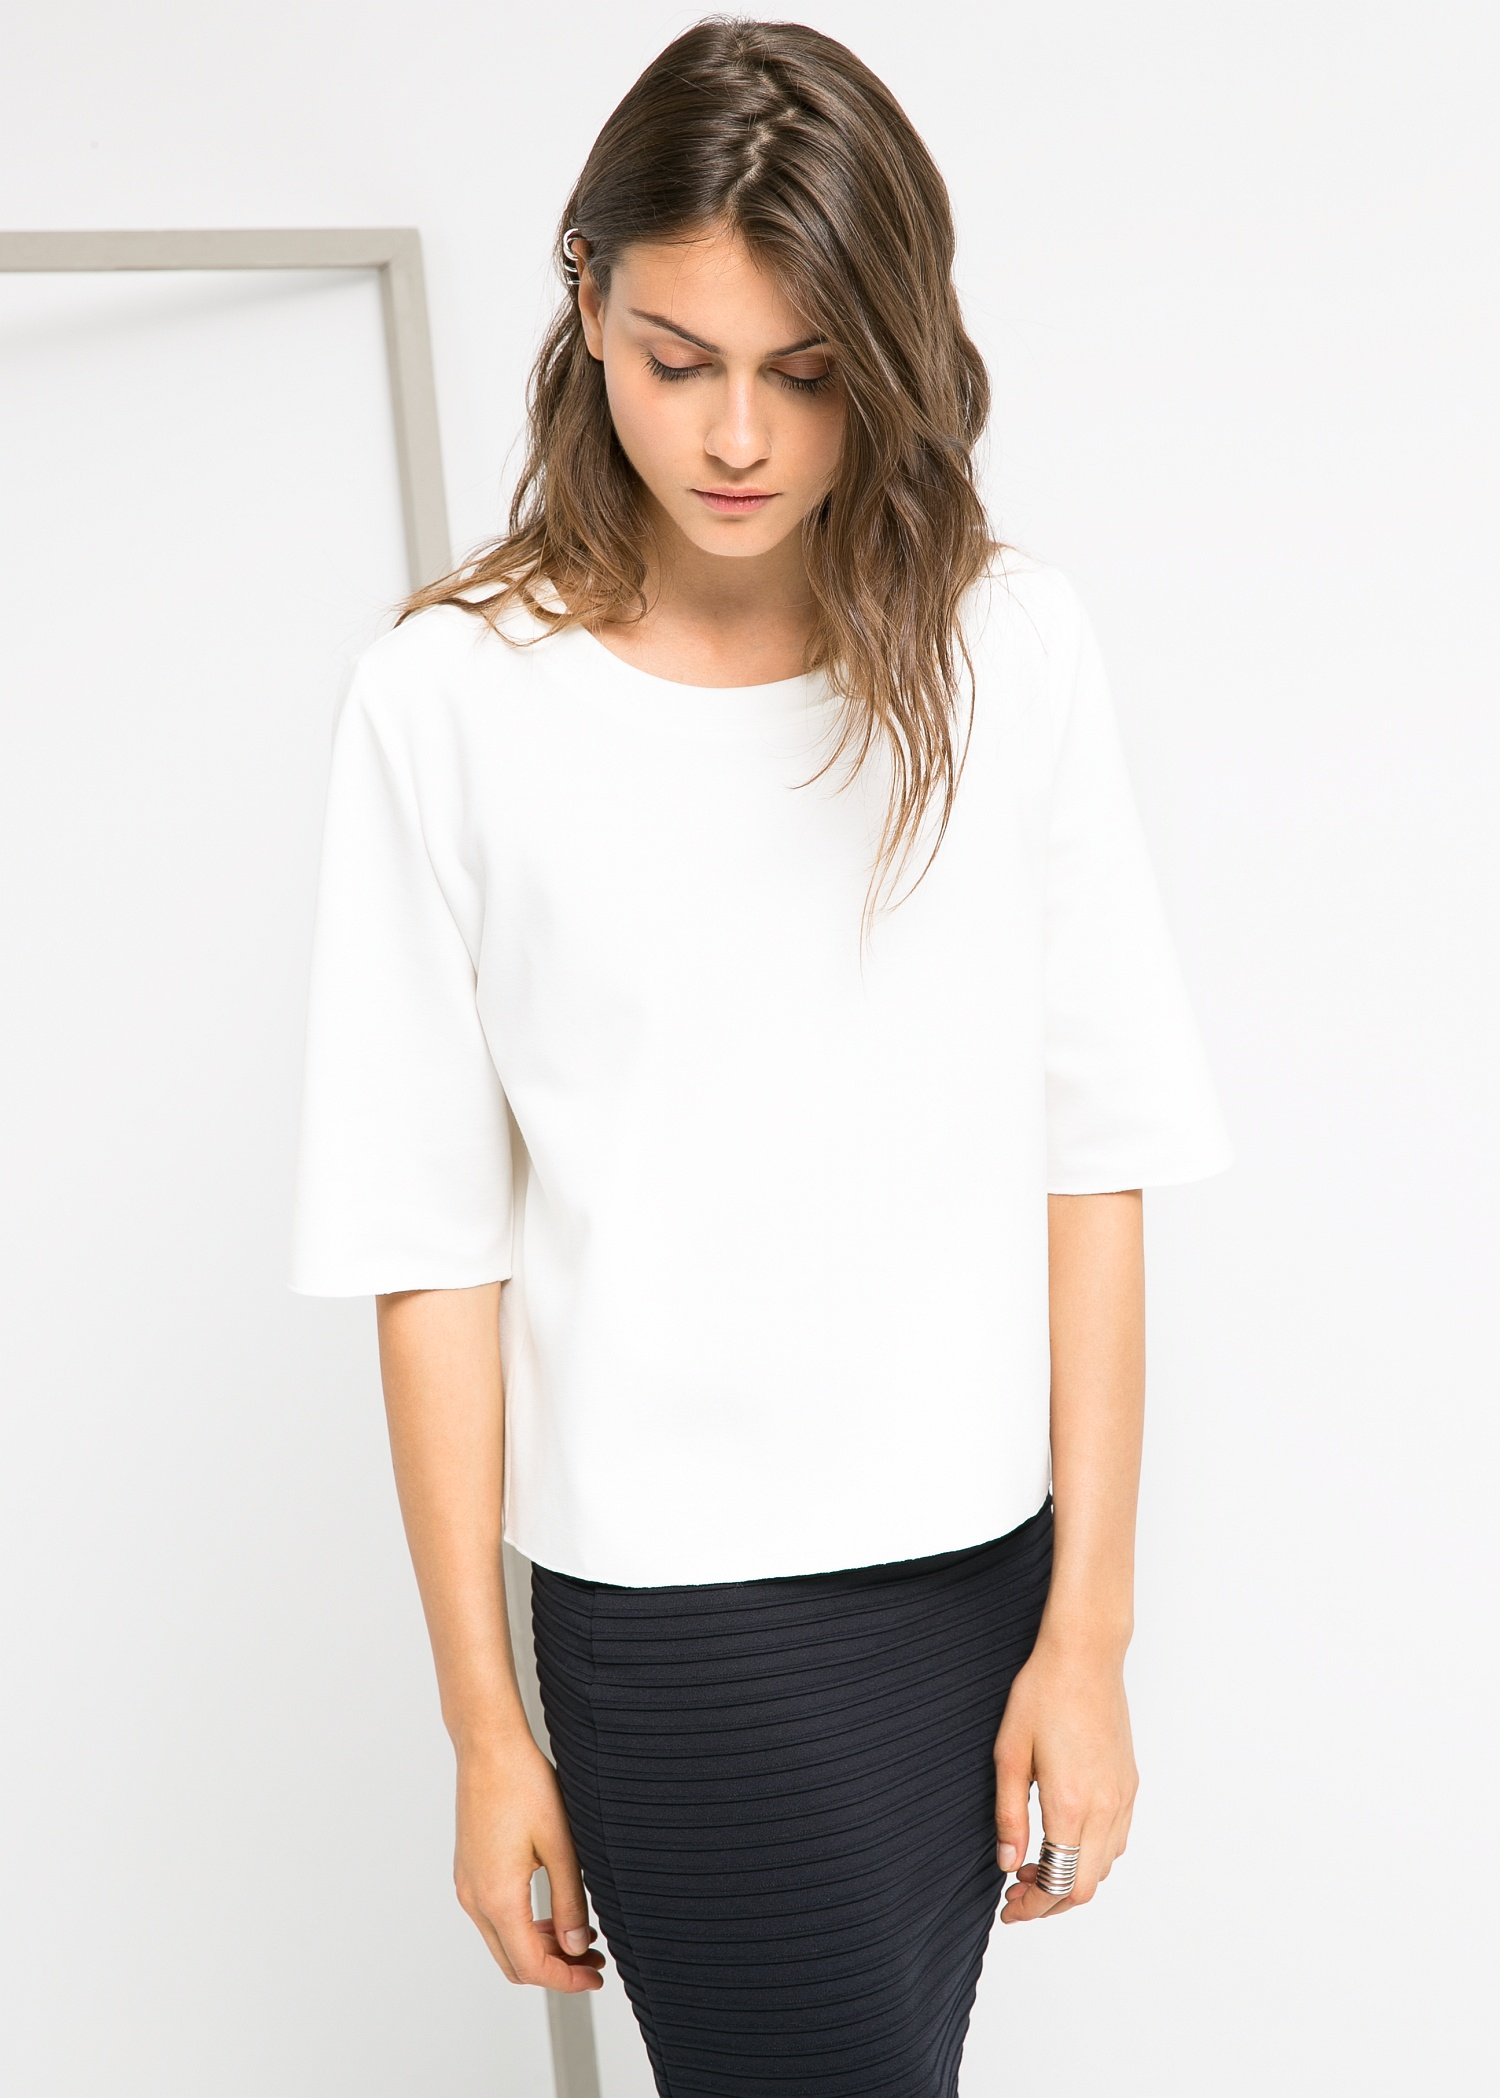 Boxy T Shirts Women S